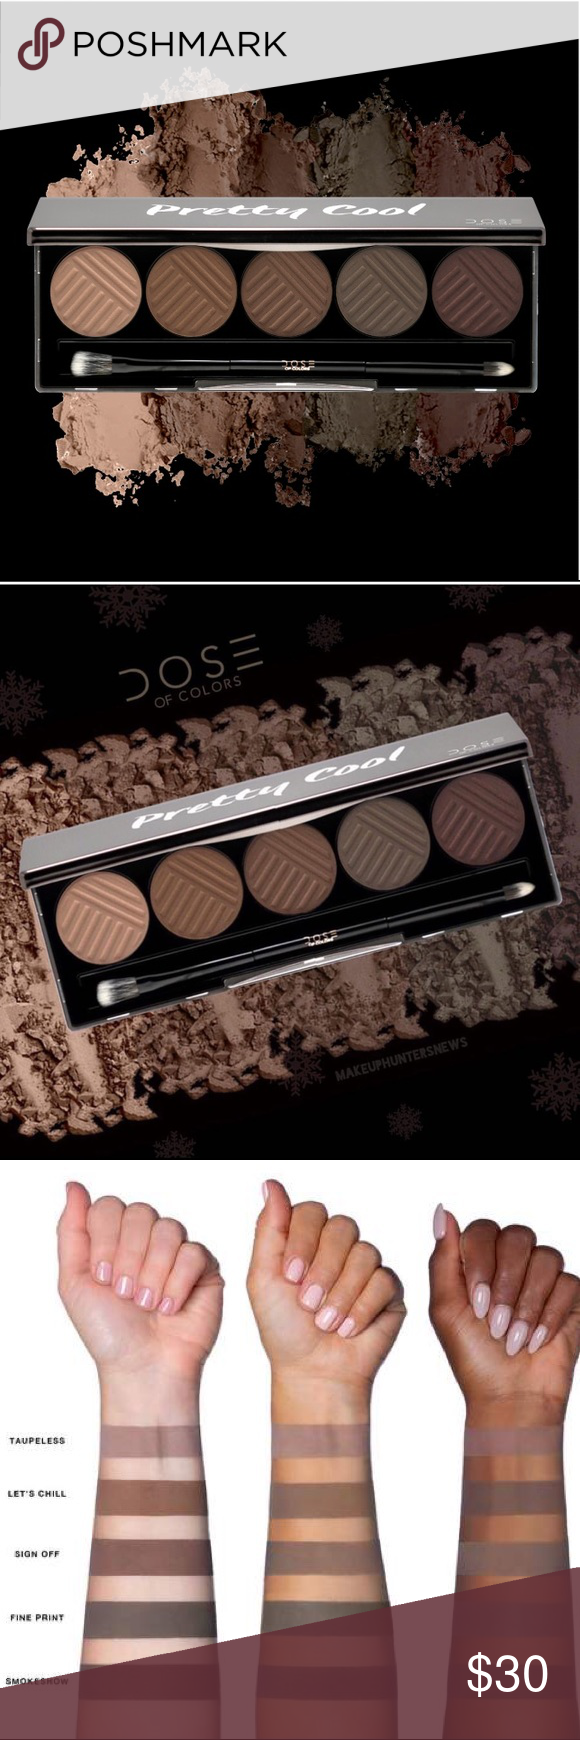 HPx2 Dose of Colors Pretty Cool Palette NWT Favorite